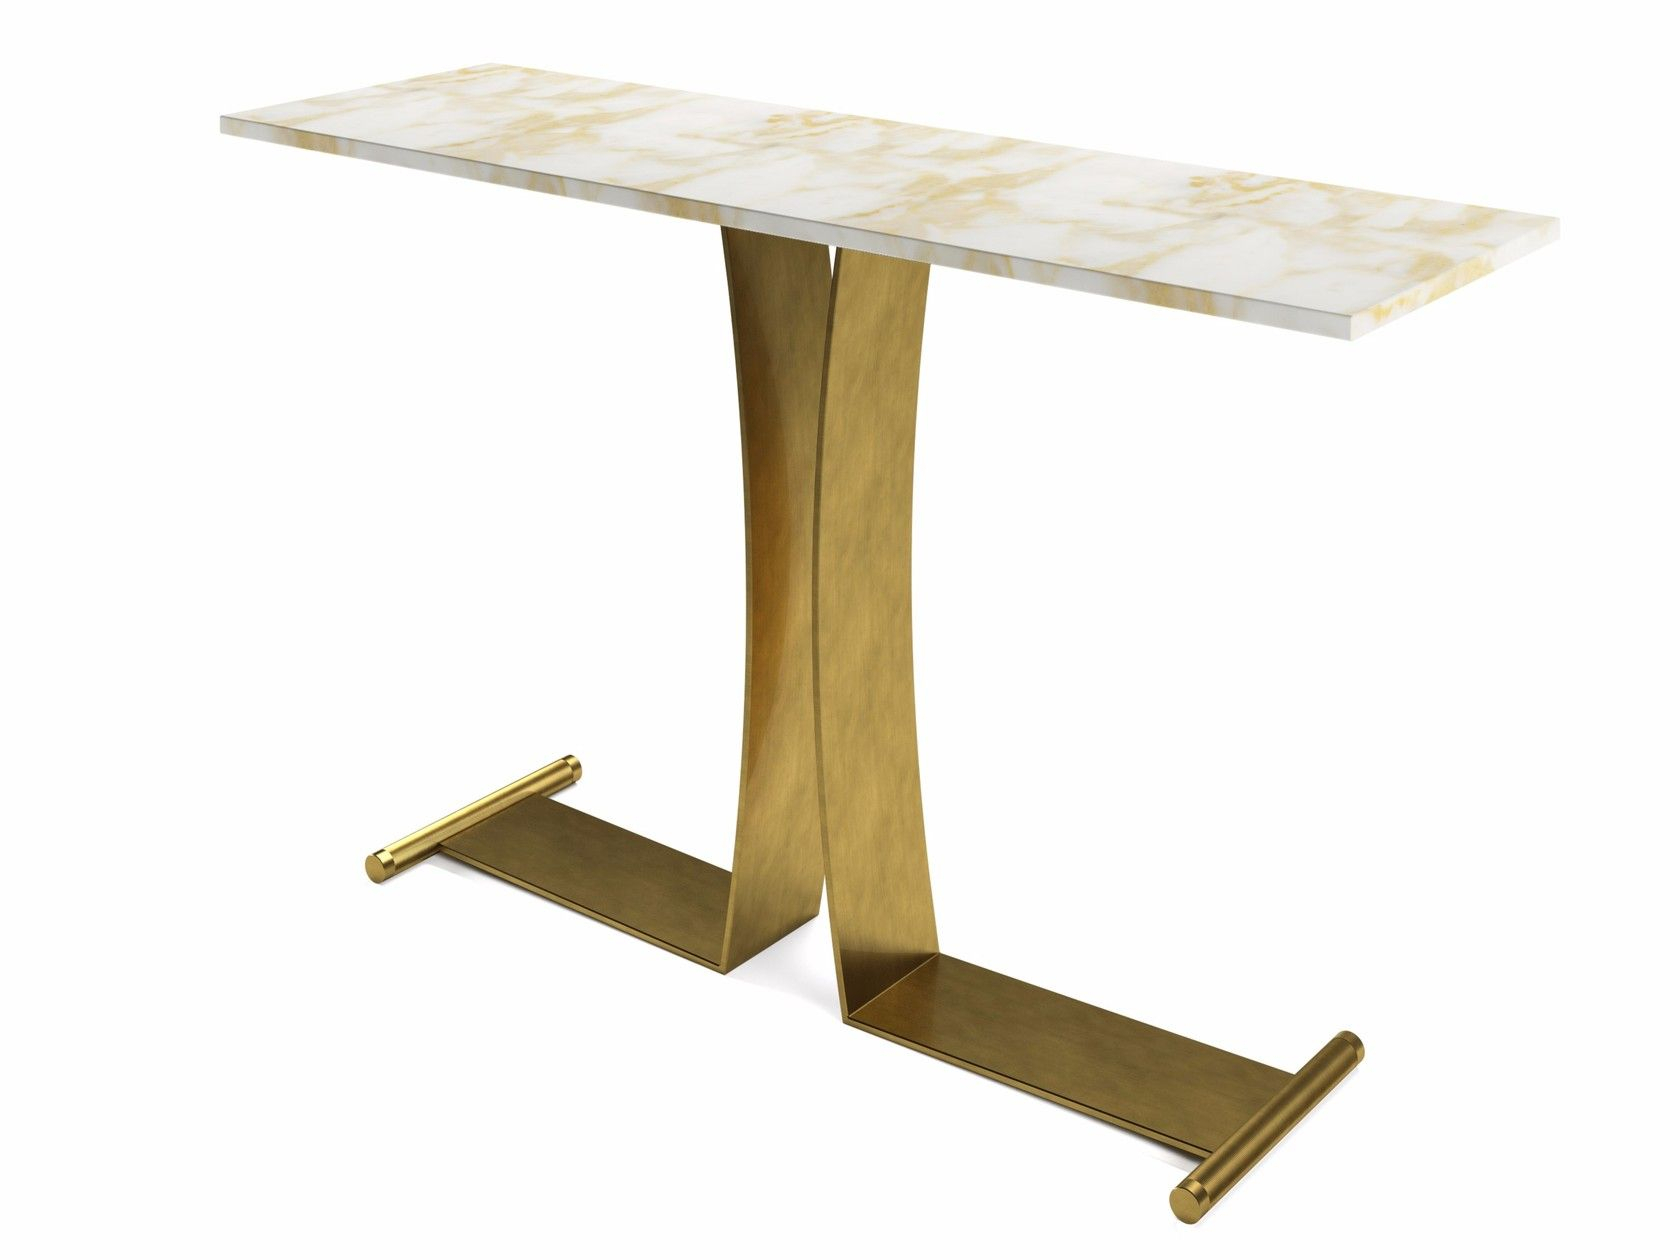 Guy | Console Table In 2018 | 1gja Console Tables | Pinterest In Parsons White Marble Top & Elm Base 48x16 Console Tables (View 15 of 30)